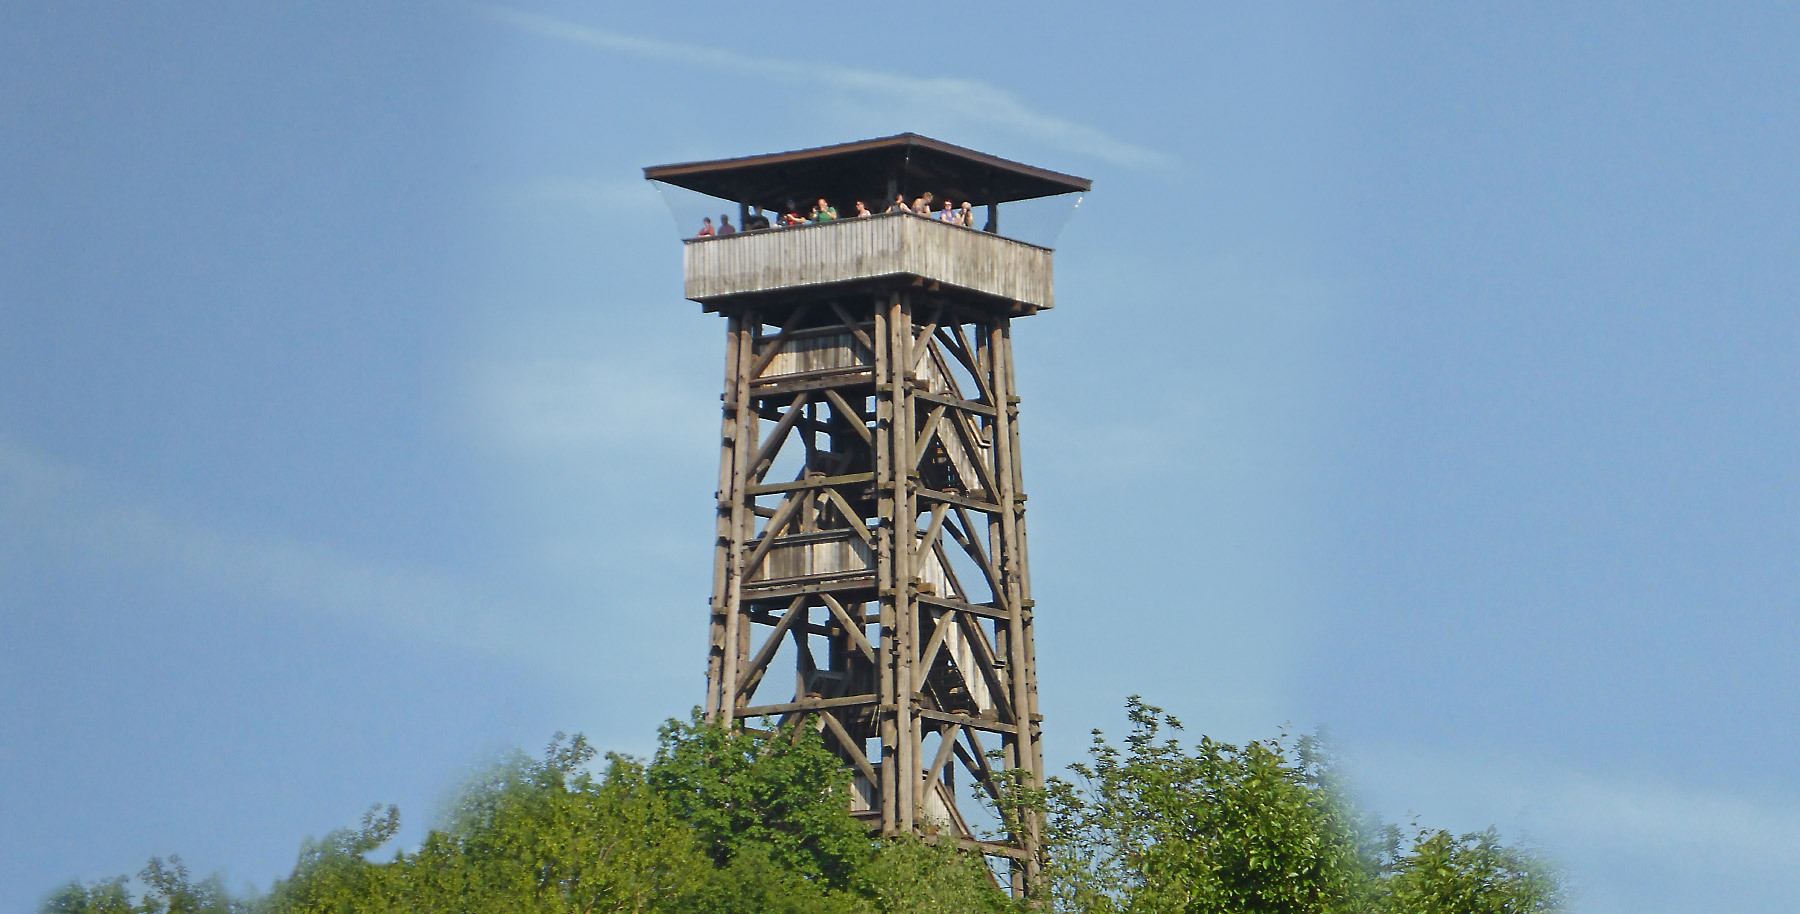 Goethe Tower